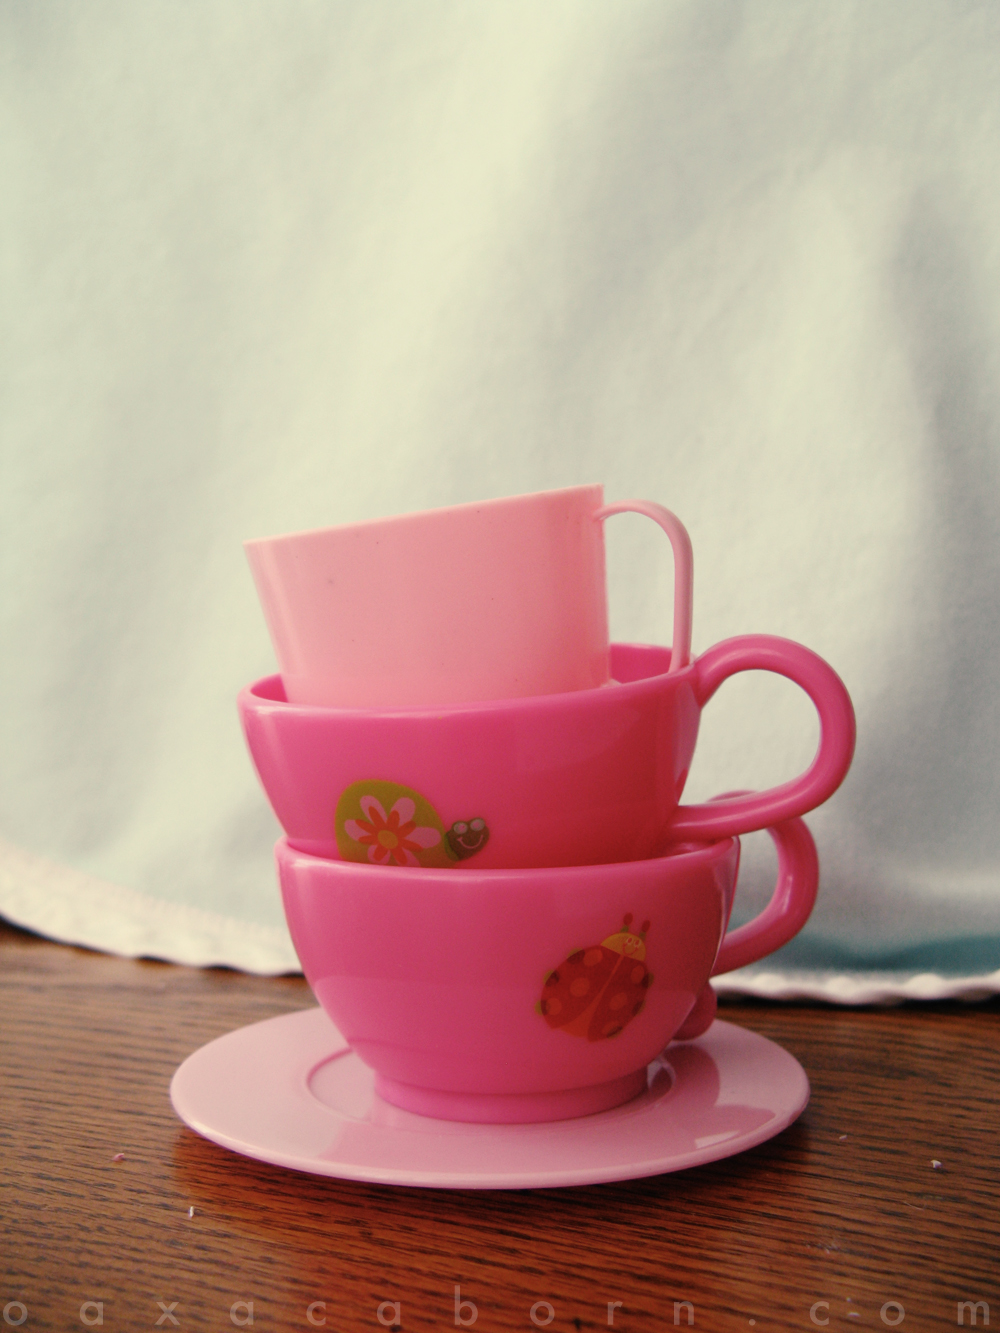 Toy tea cups and saucer, photo via Oaxacaborn dot com